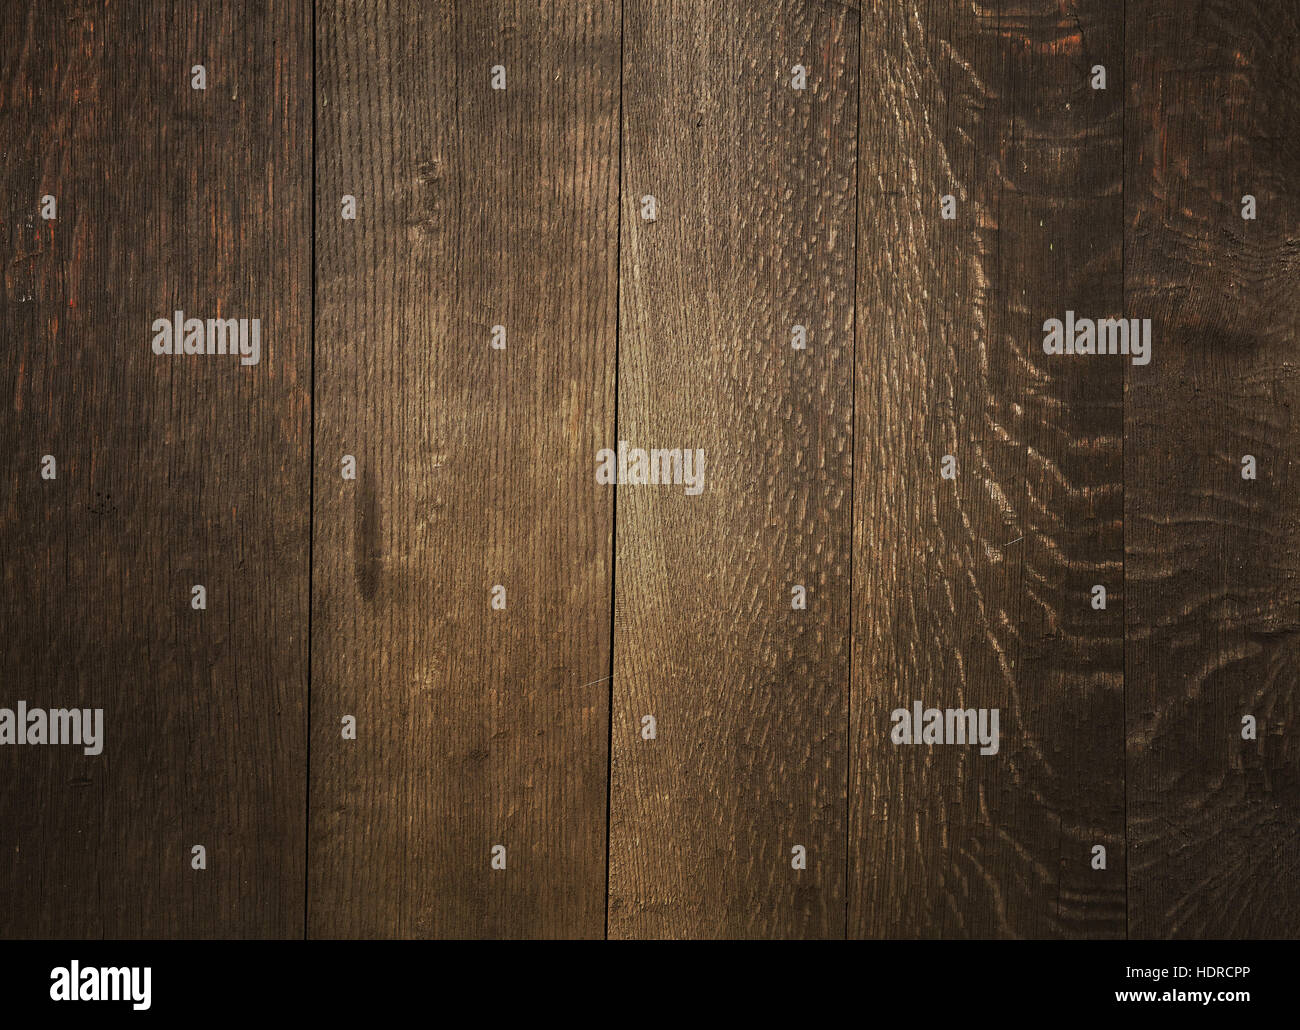 dark brown wood floor texture. Old vintage aged grunge dark brown wooden floor planks texture background  with light center and shaded border edges Stock